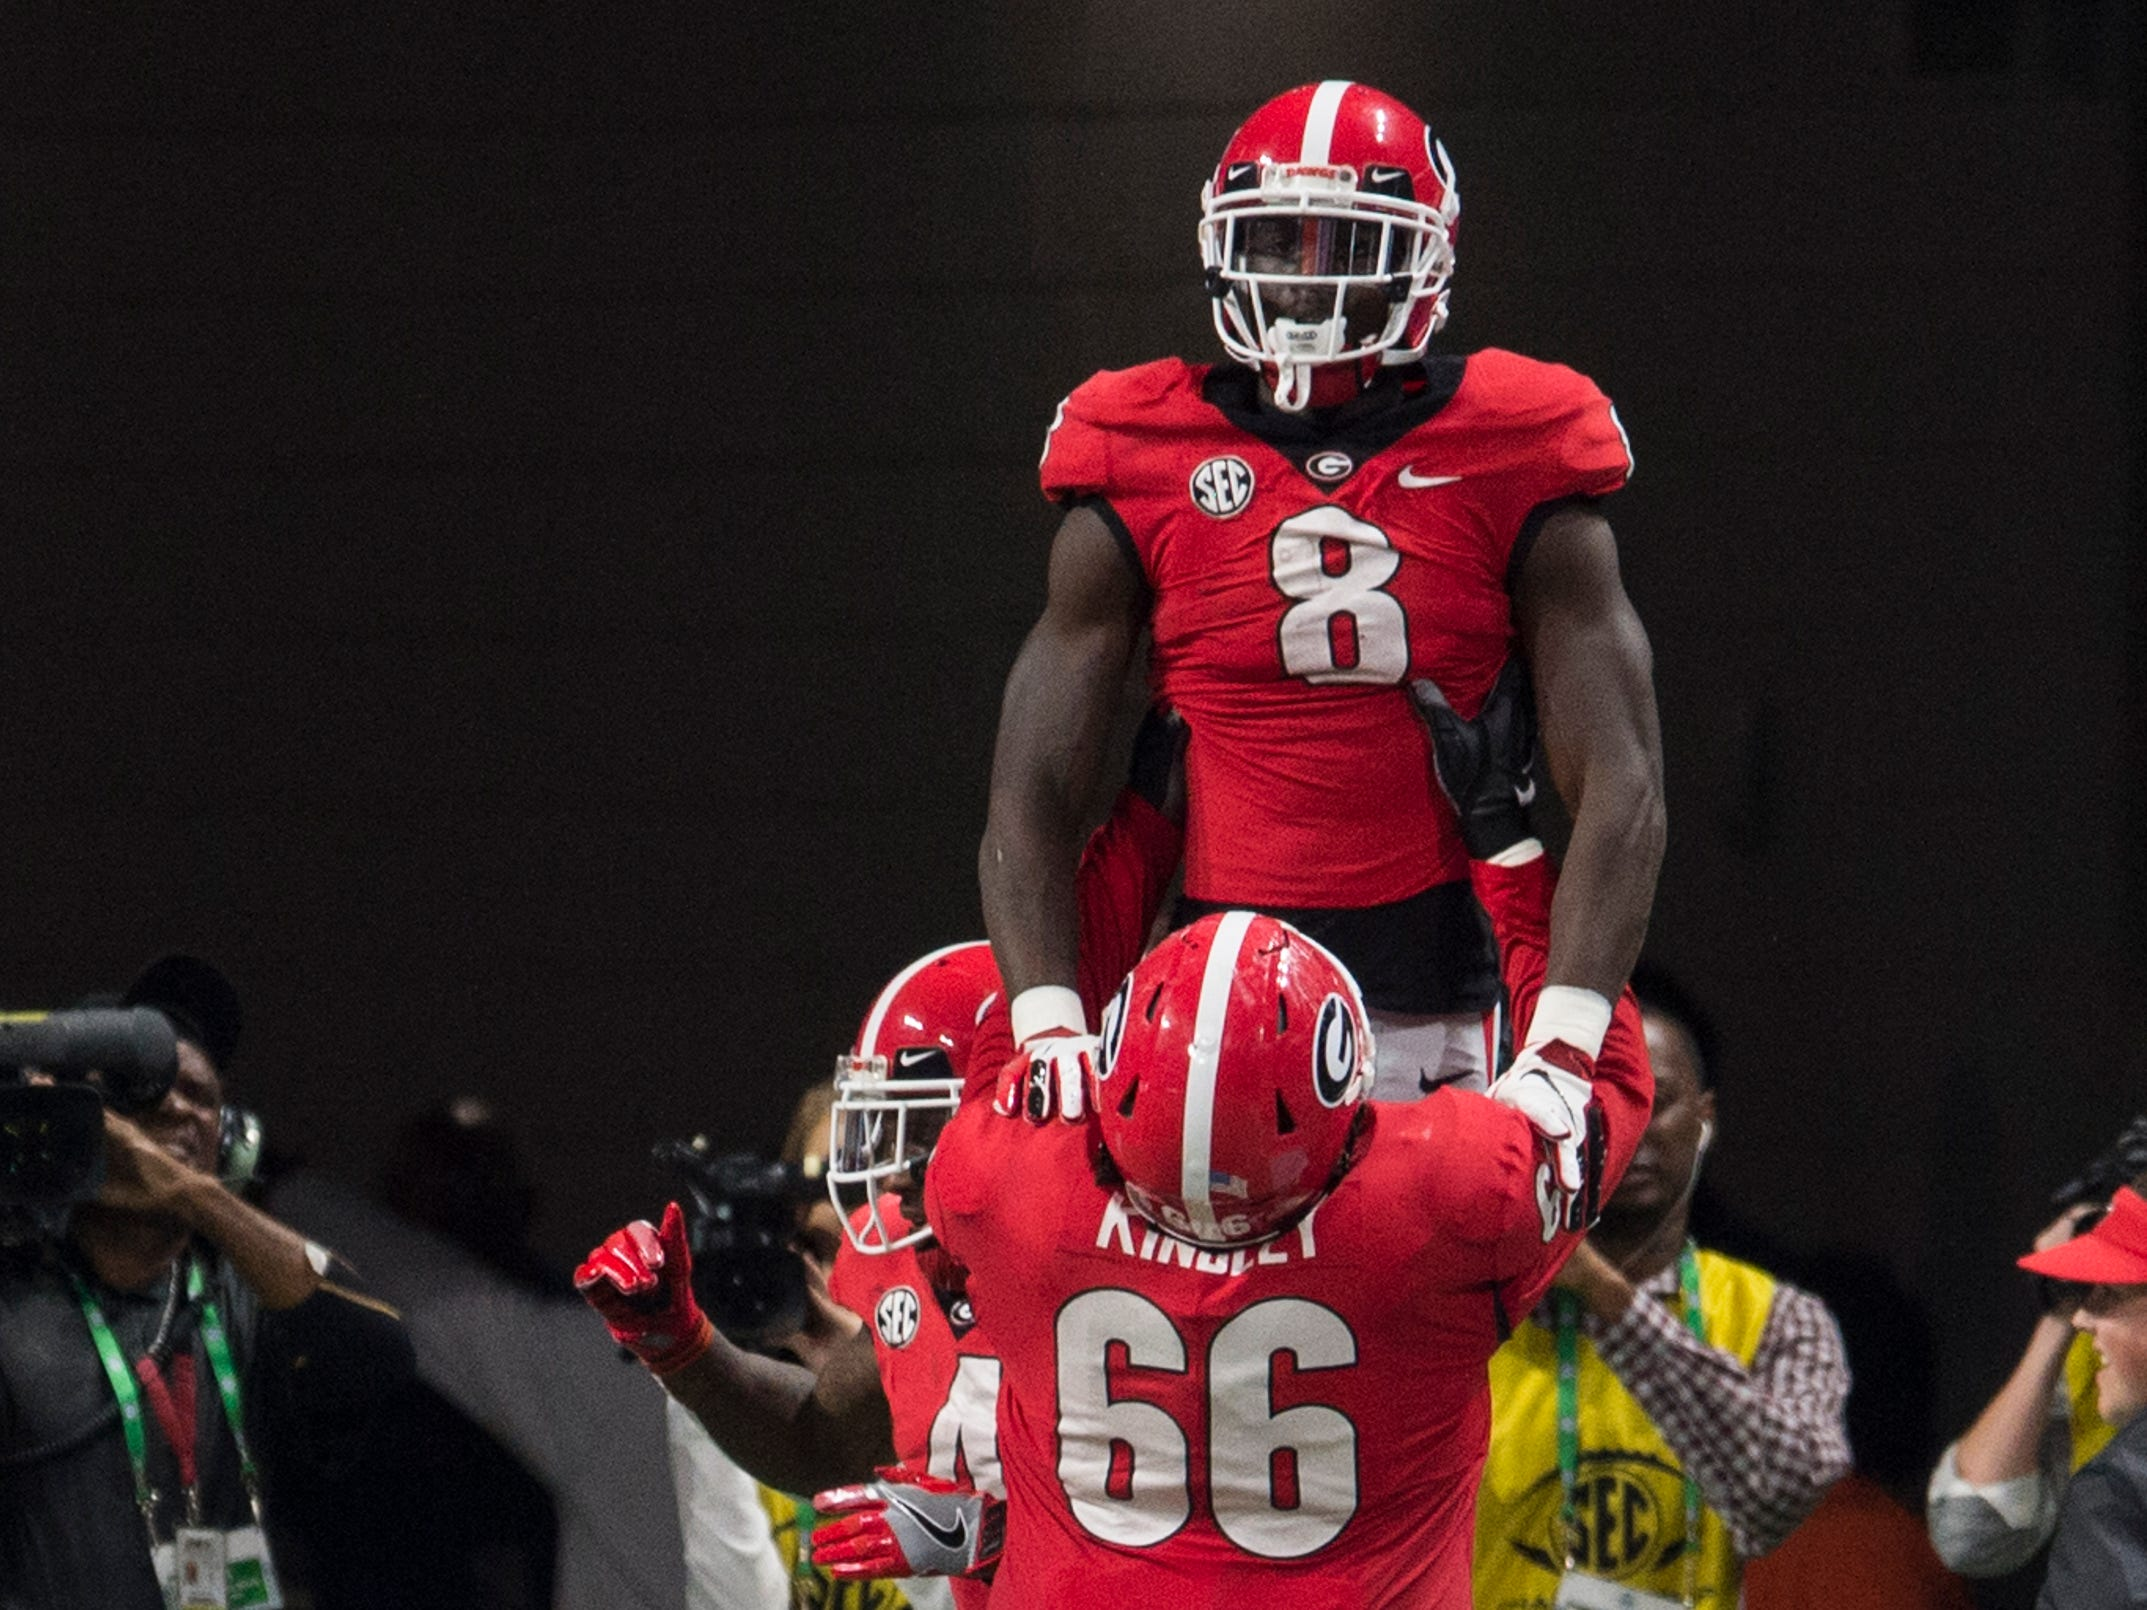 Georgia wide receiver Riley Ridley (8) and Georgia offensive lineman Solomon Kindley (66) celebrate Ridley's touchdown catch during the SEC Championship game at Mercedes-Benz Stadium in Atlanta, Ga., on Saturday Dec. 1, 2018. Alabama defeated Georgia 35-28.